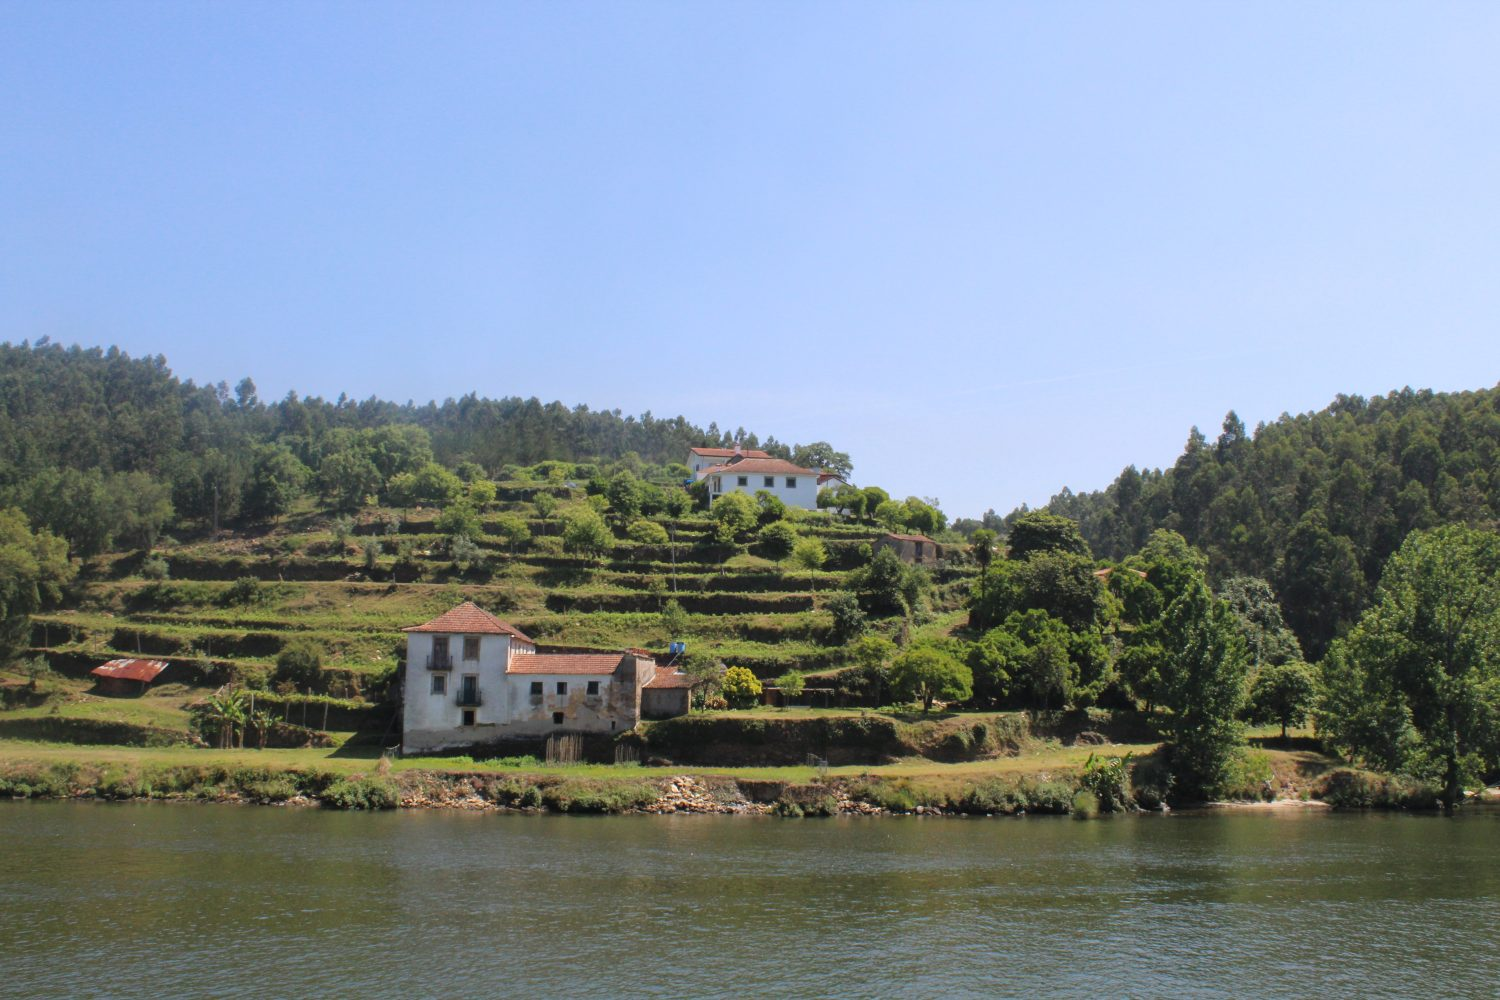 Old houses near thr river Douro